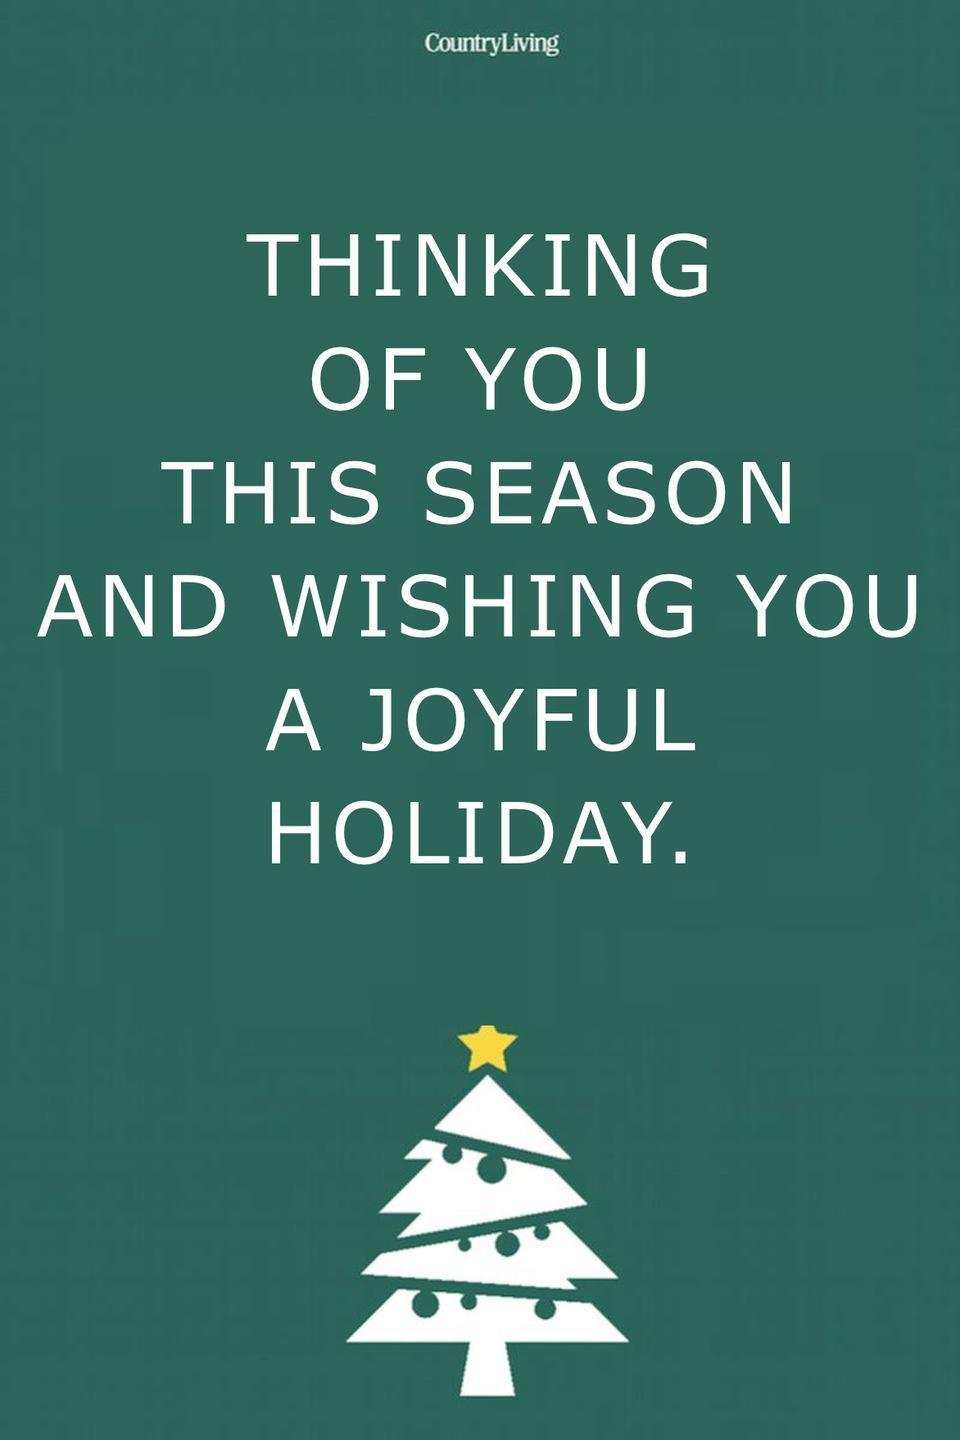 <p>Thinking of you this season and wishing you a joyful holiday.</p>